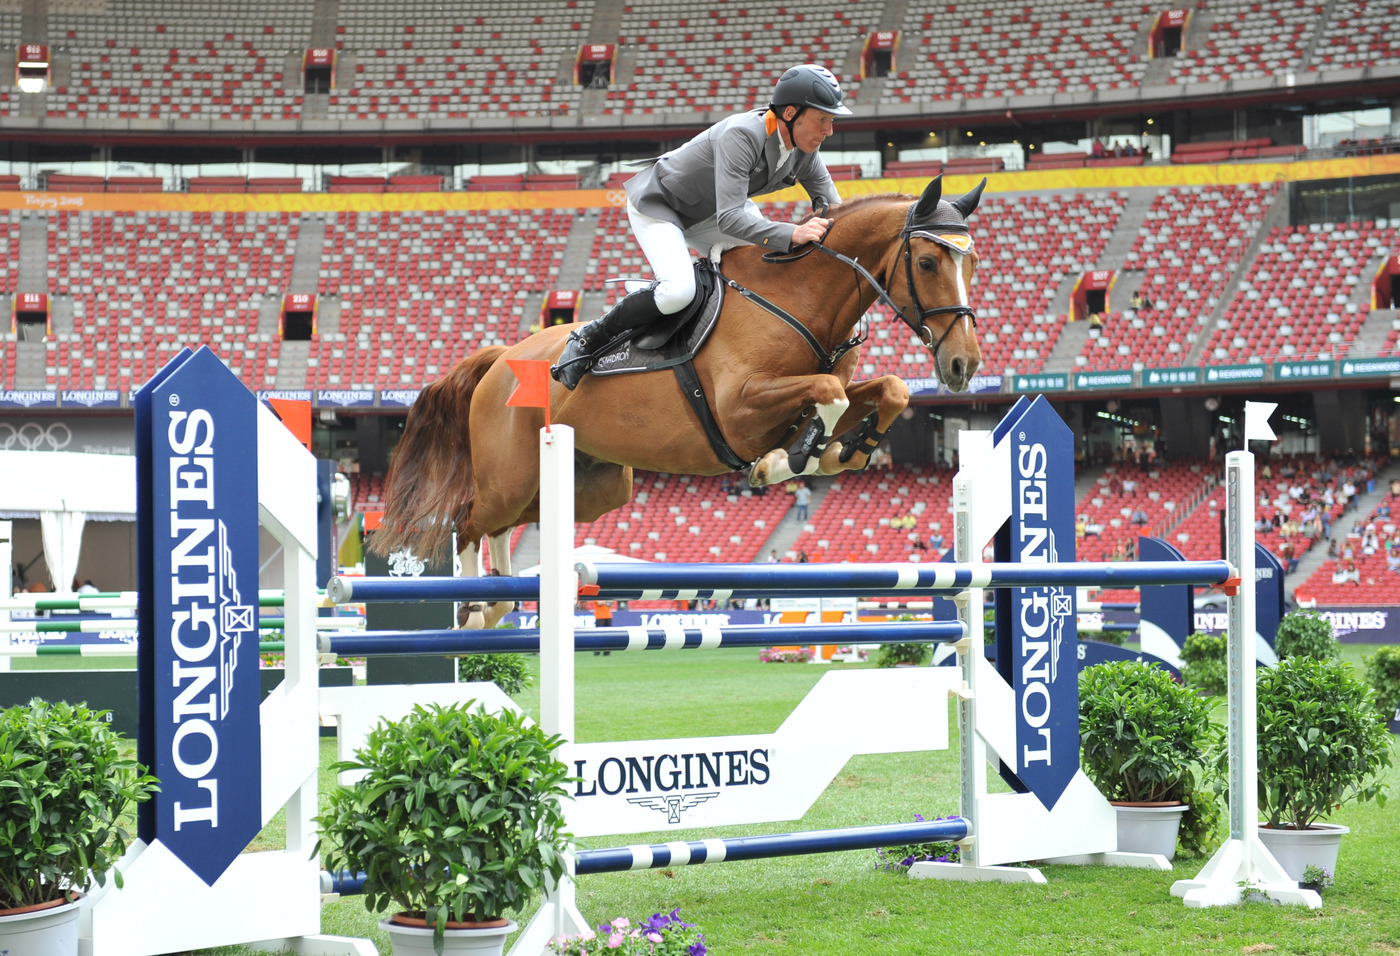 Longines Show Jumping Event: Enjoying the beauty of equestrian sport at the Longines Equestrian Beijing Masters 2